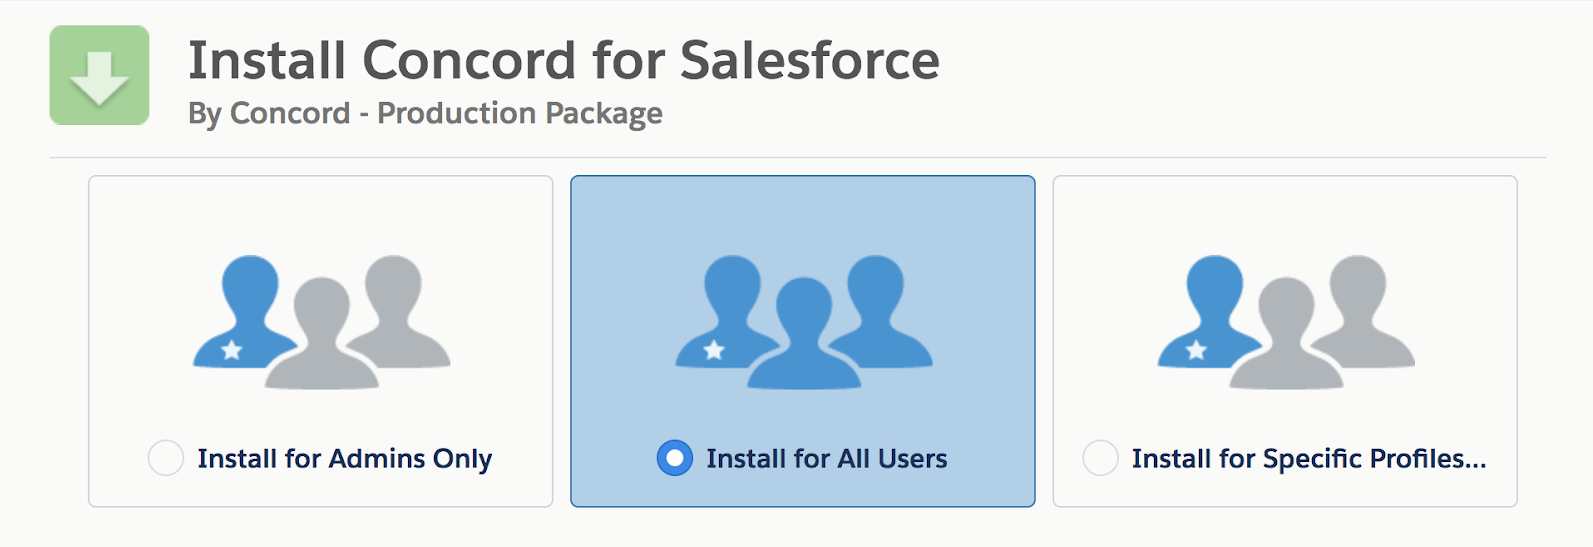 install_concord_for_salesforce_2.png